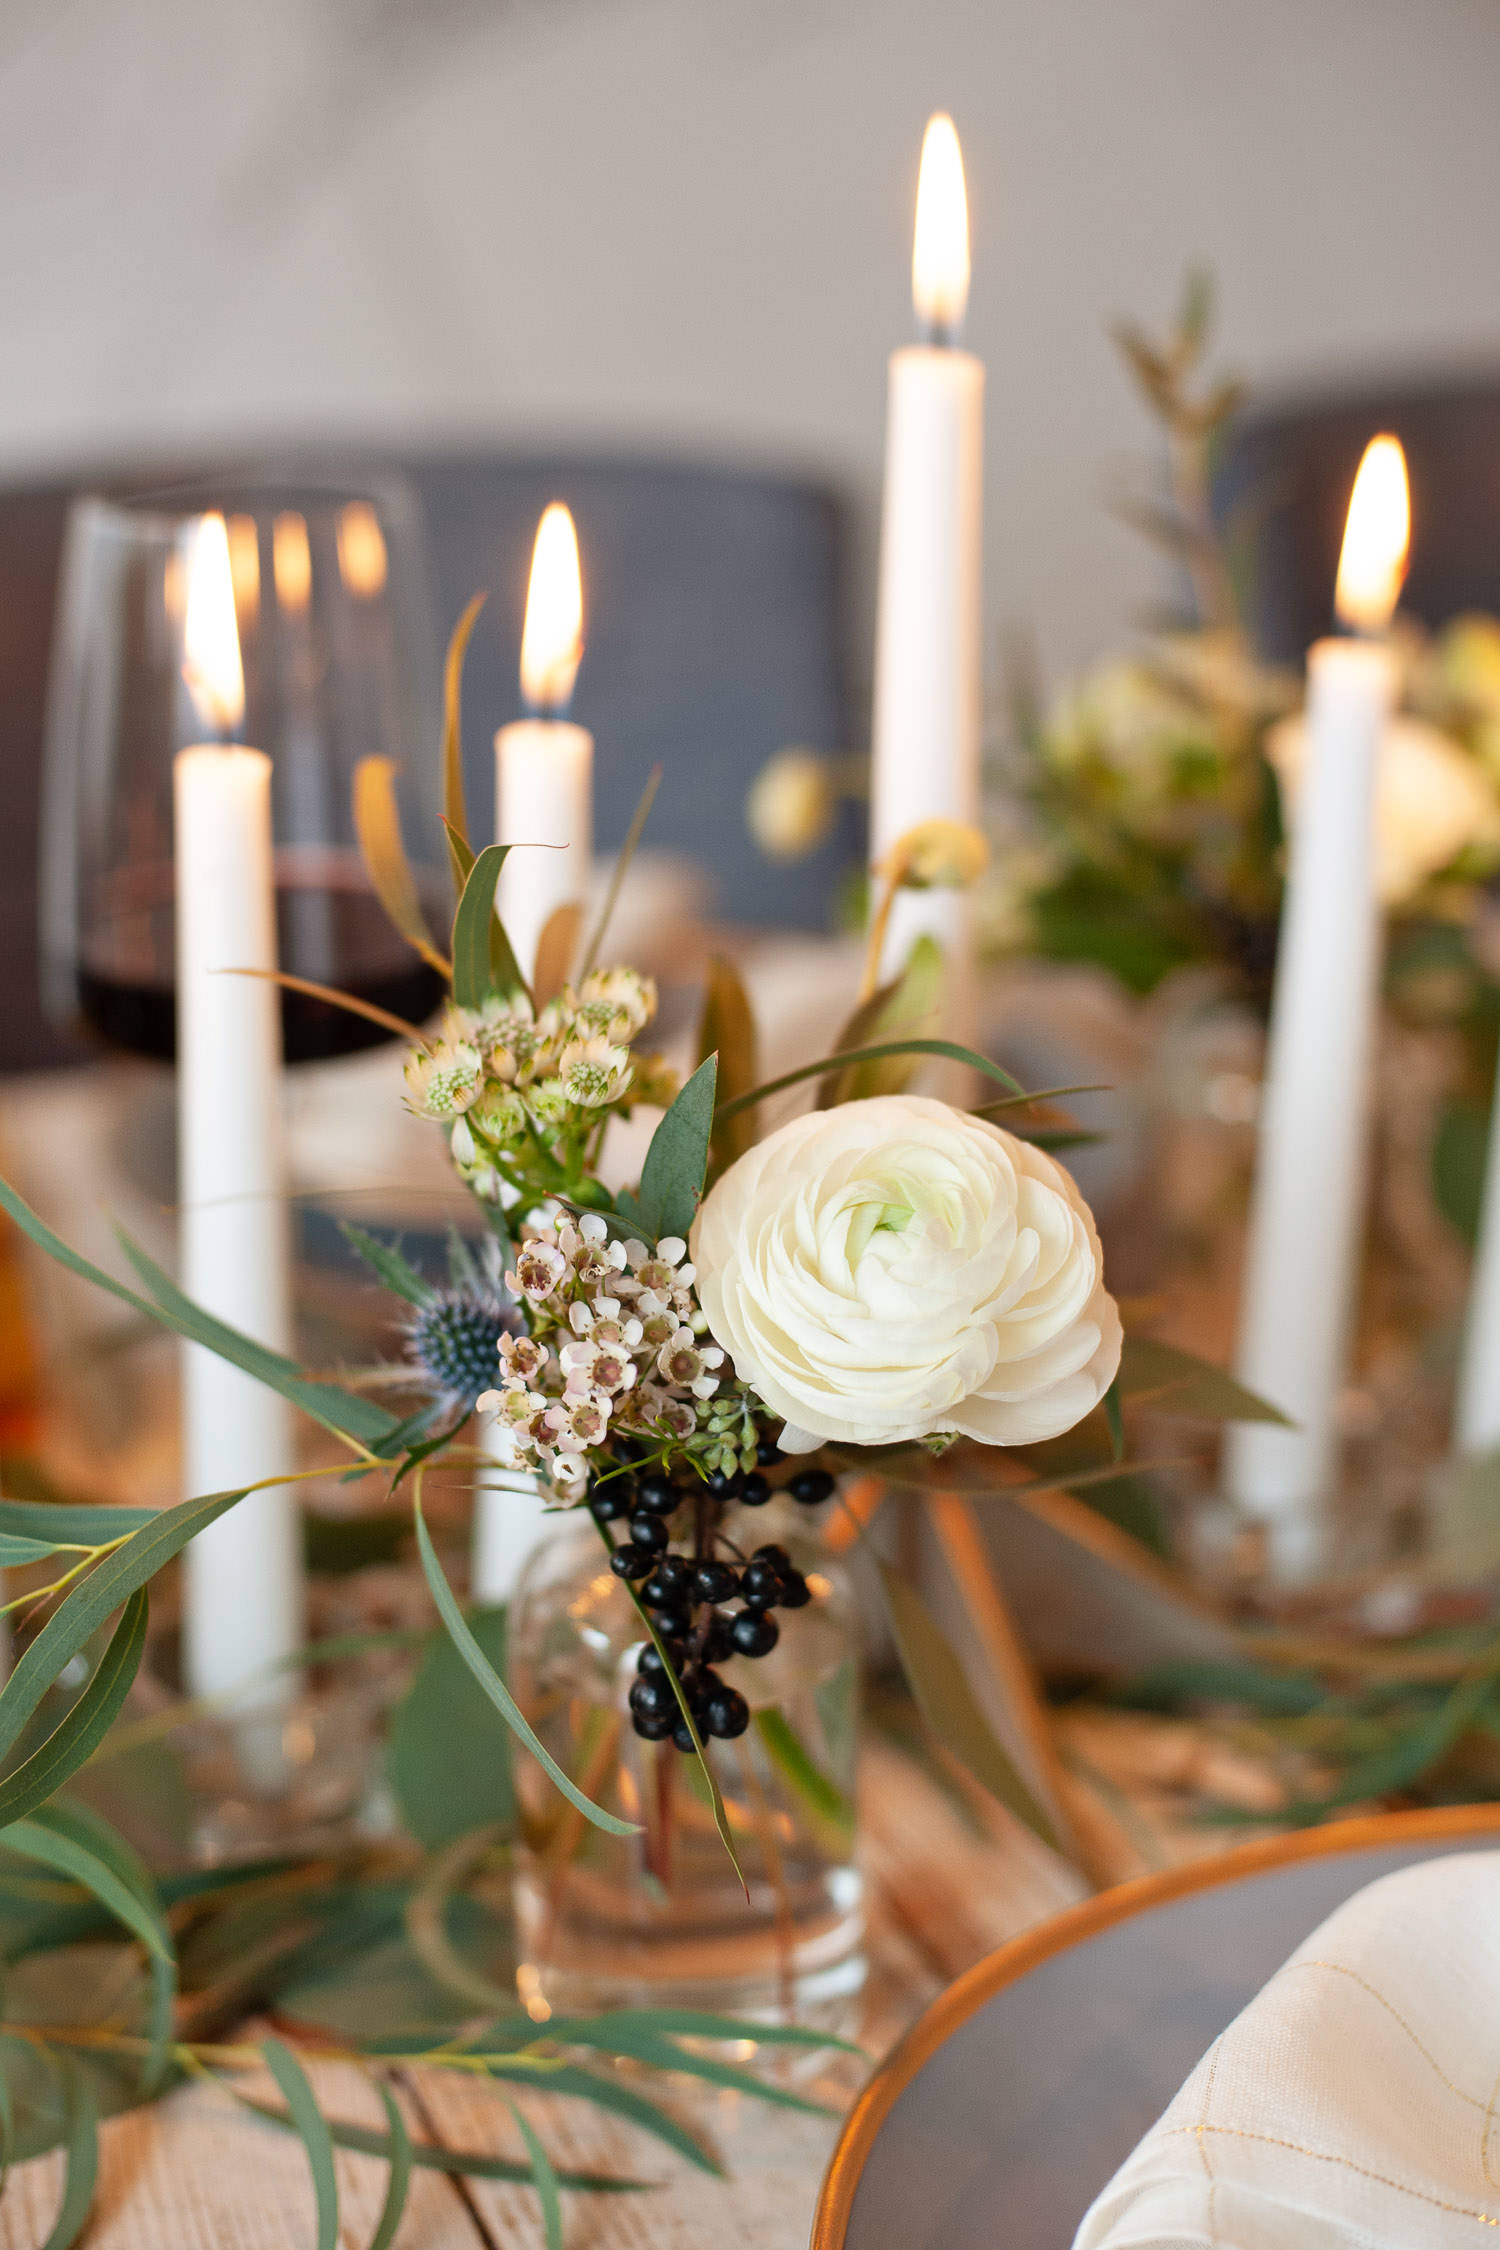 flickering candles on Hanukkah table captured by Calgary wedding photographer Tara Whittaker